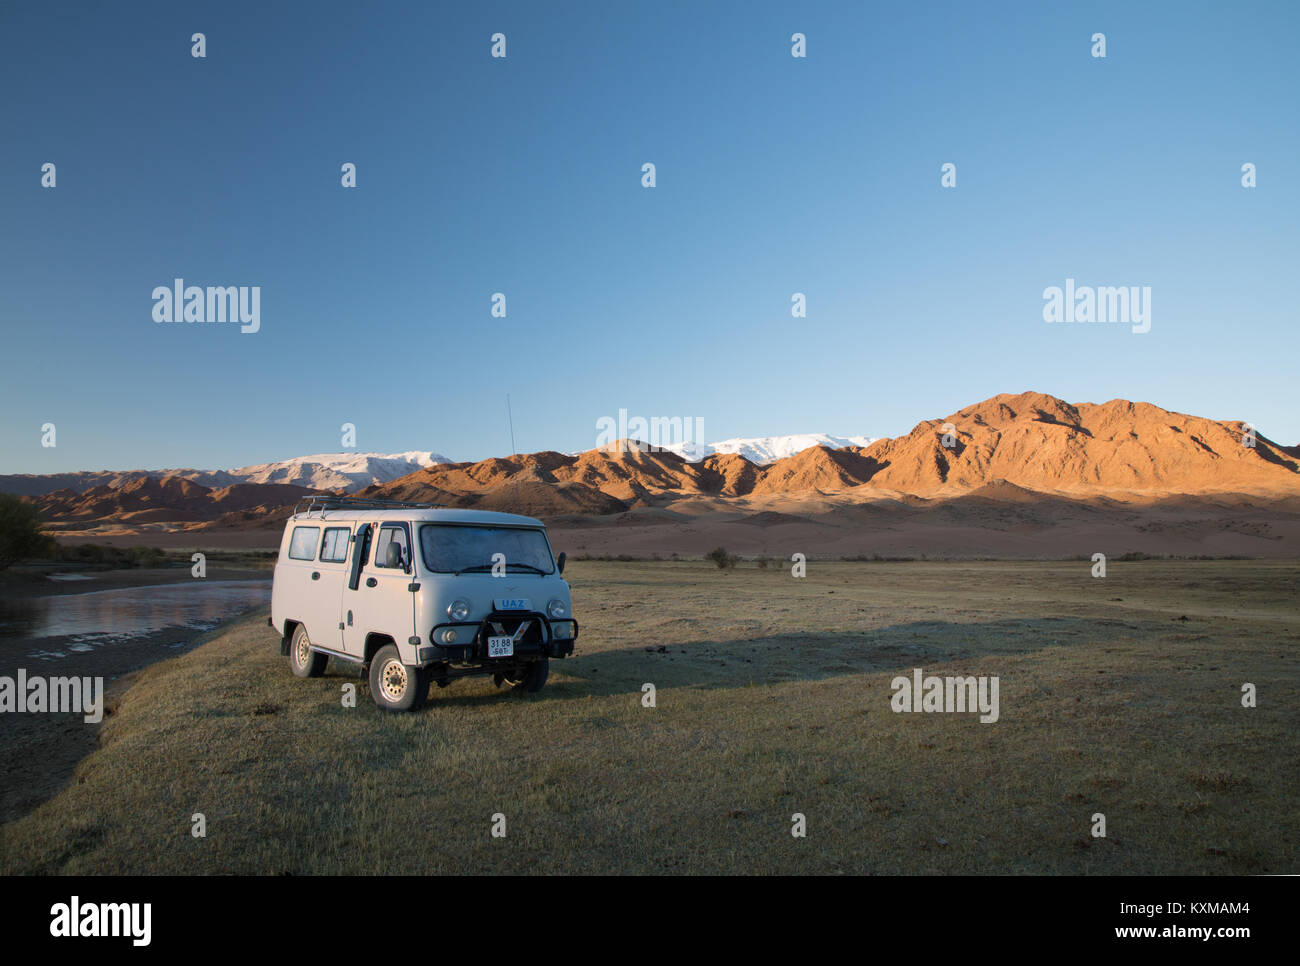 Russian van UAZ452 camper van offroad 4x4 sunrise light cold morning Mongolia landscape mountains - Stock Image